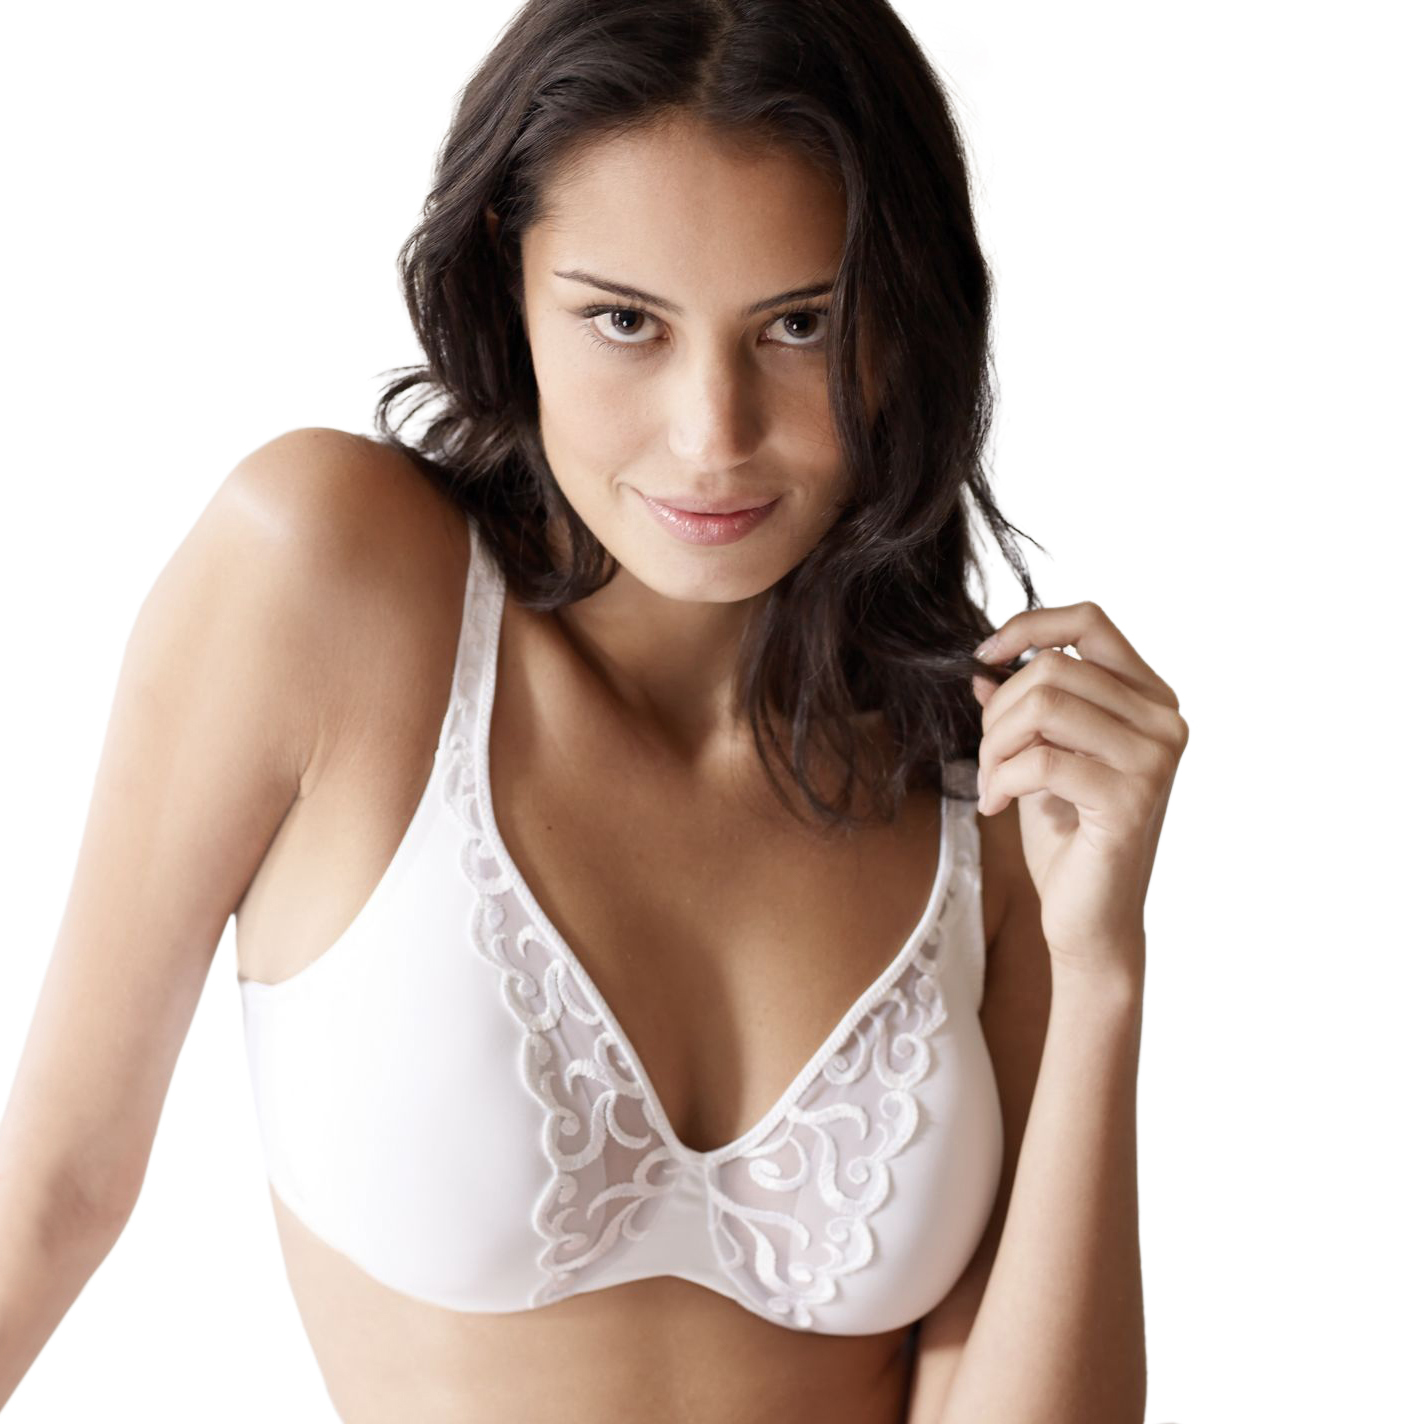 Full C Cup Breast Implants Pictures